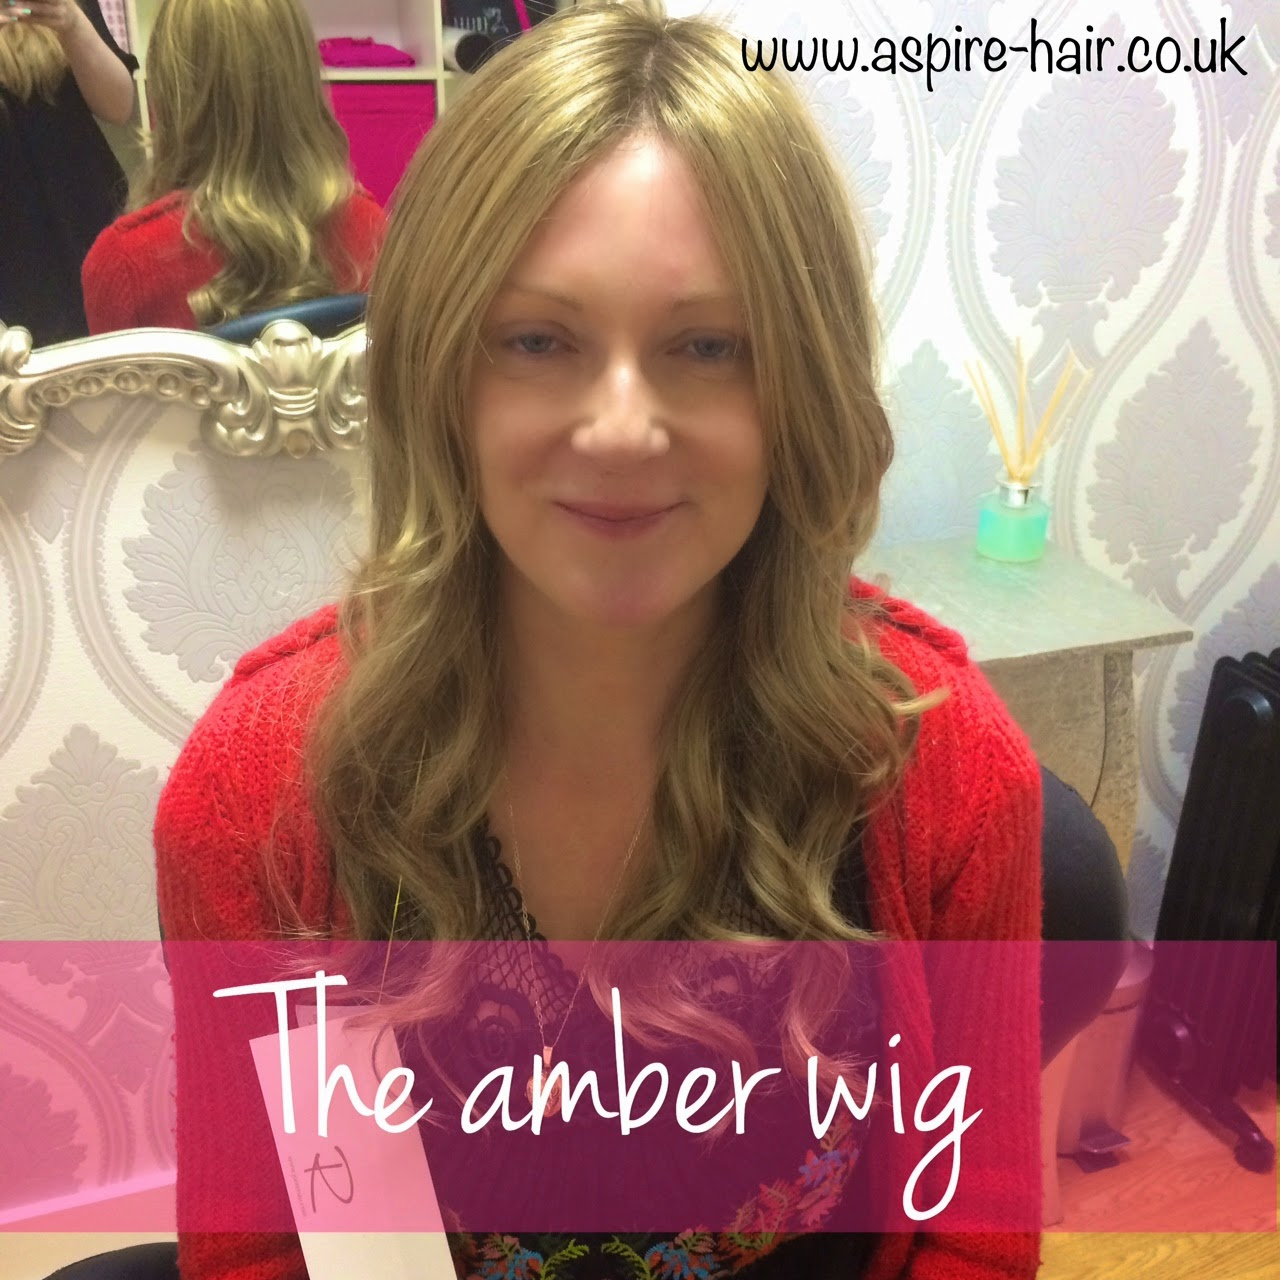 http://www.aspire-hair.co.uk/ourshop/prod_3526635-Amber.html